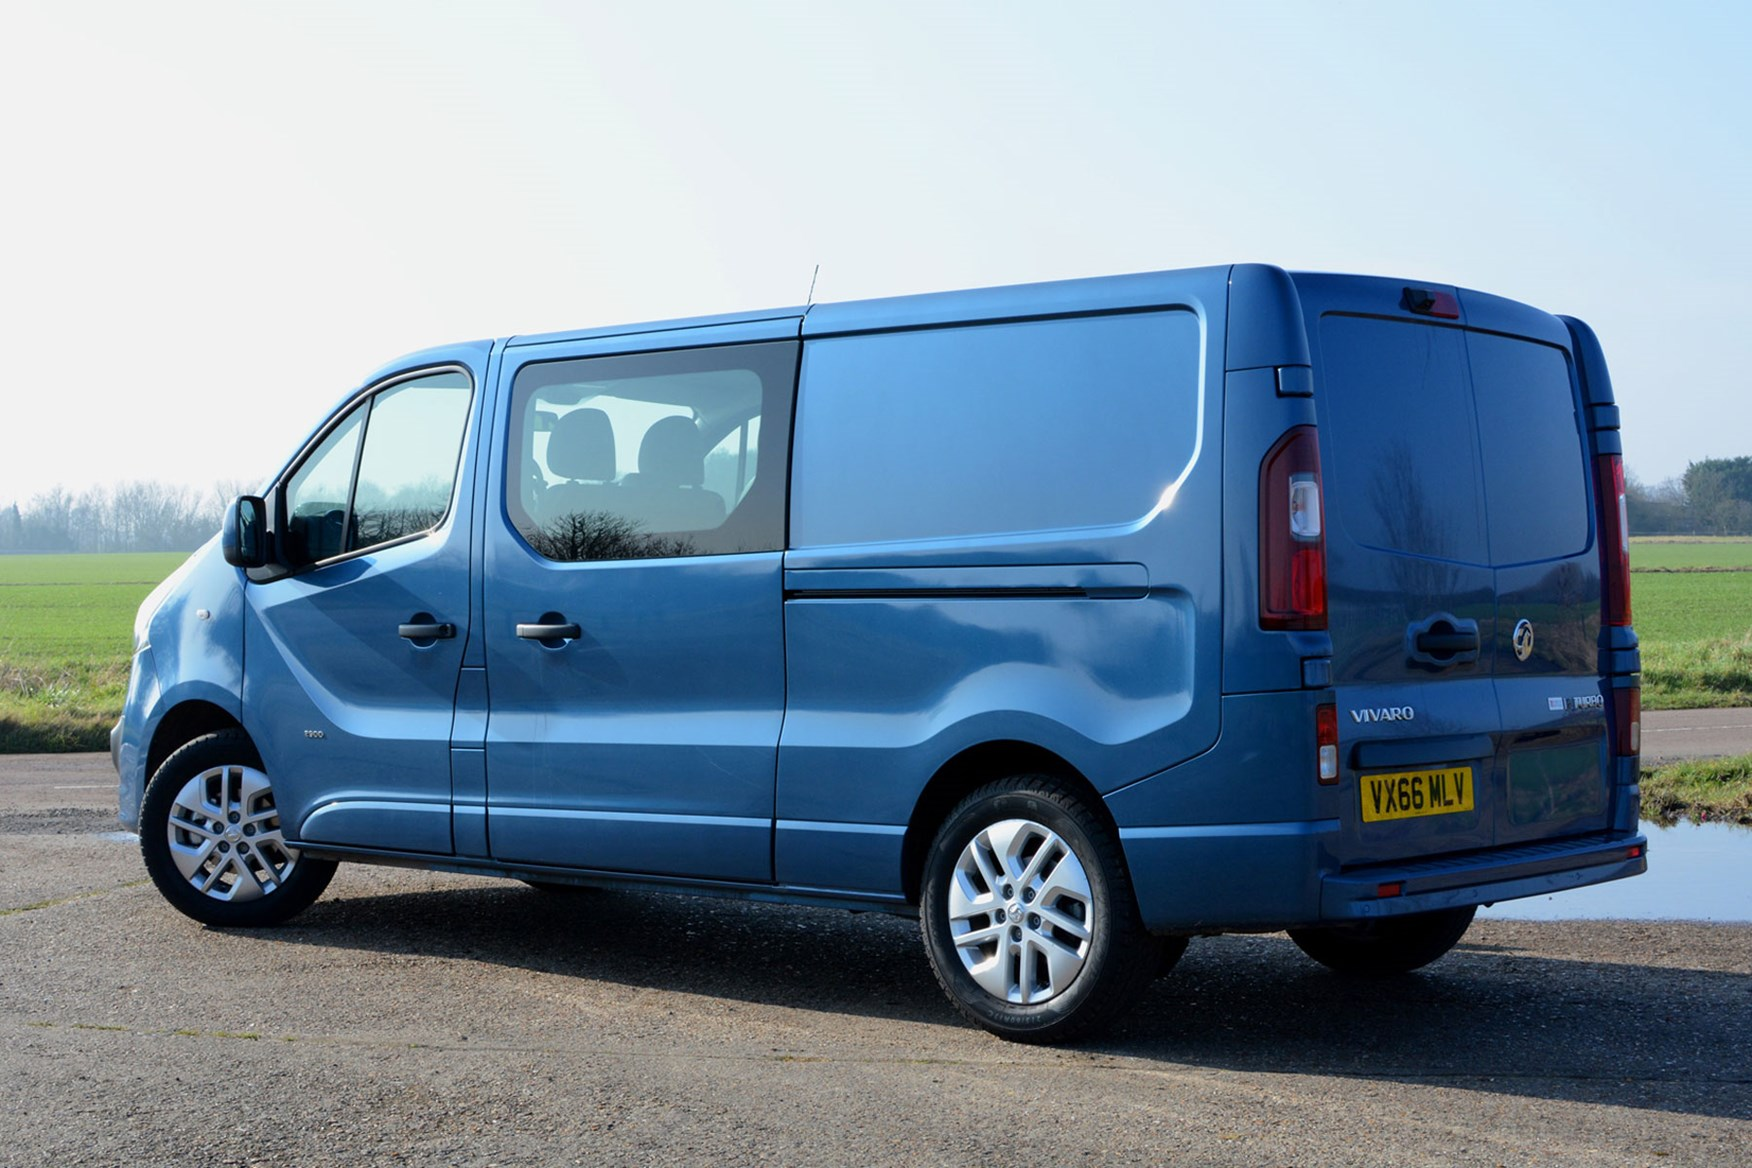 Vauxhall Vivaro Doublecab Sportive review - rear view, blue